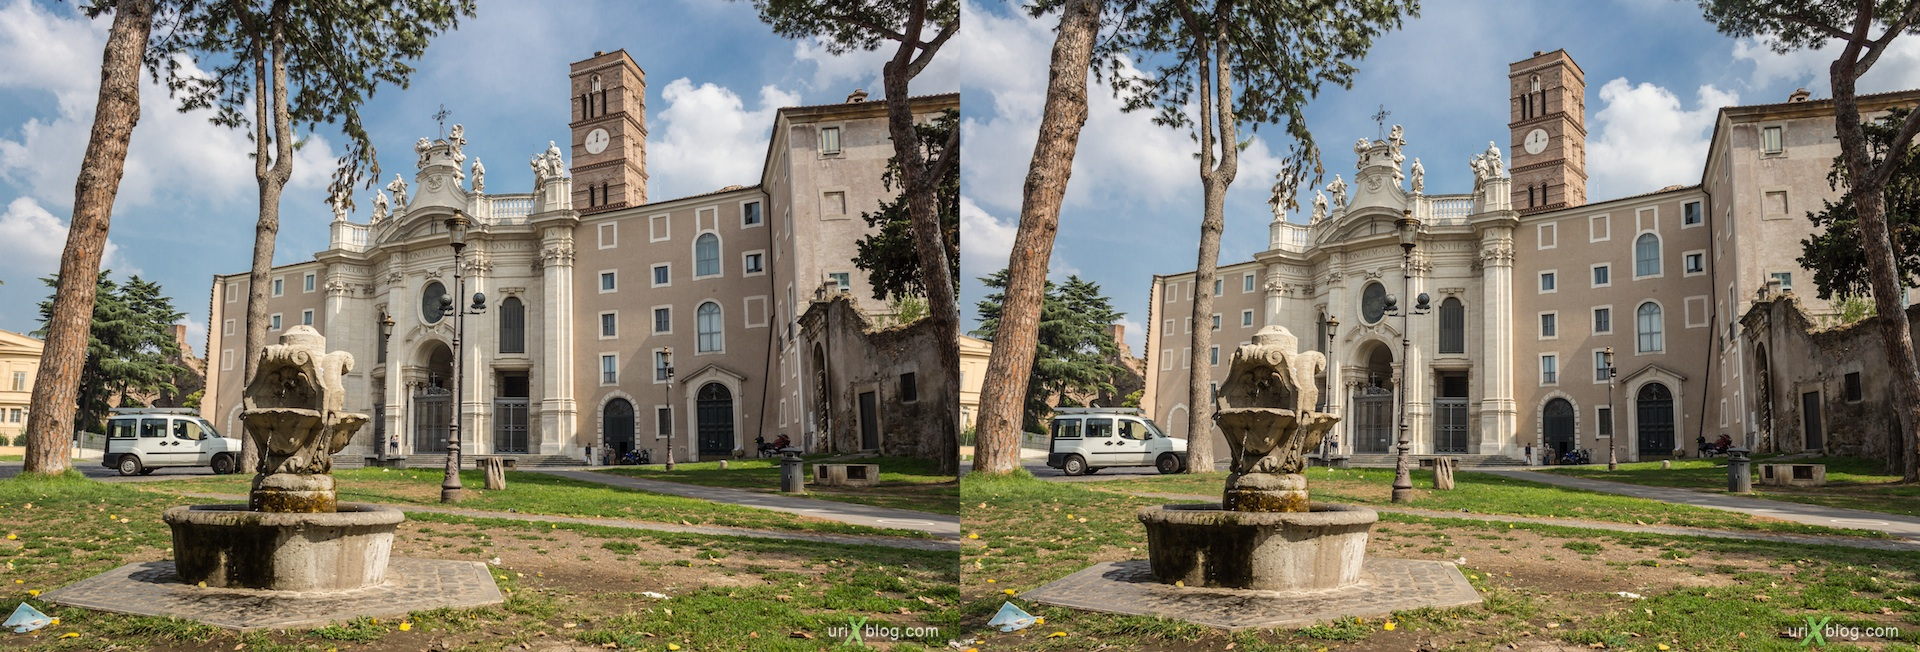 2012, Saint Cross in Jerusalem fountain, square, Rome, Italy, 3D, stereo pair, cross-eyed, crossview, cross view stereo pair